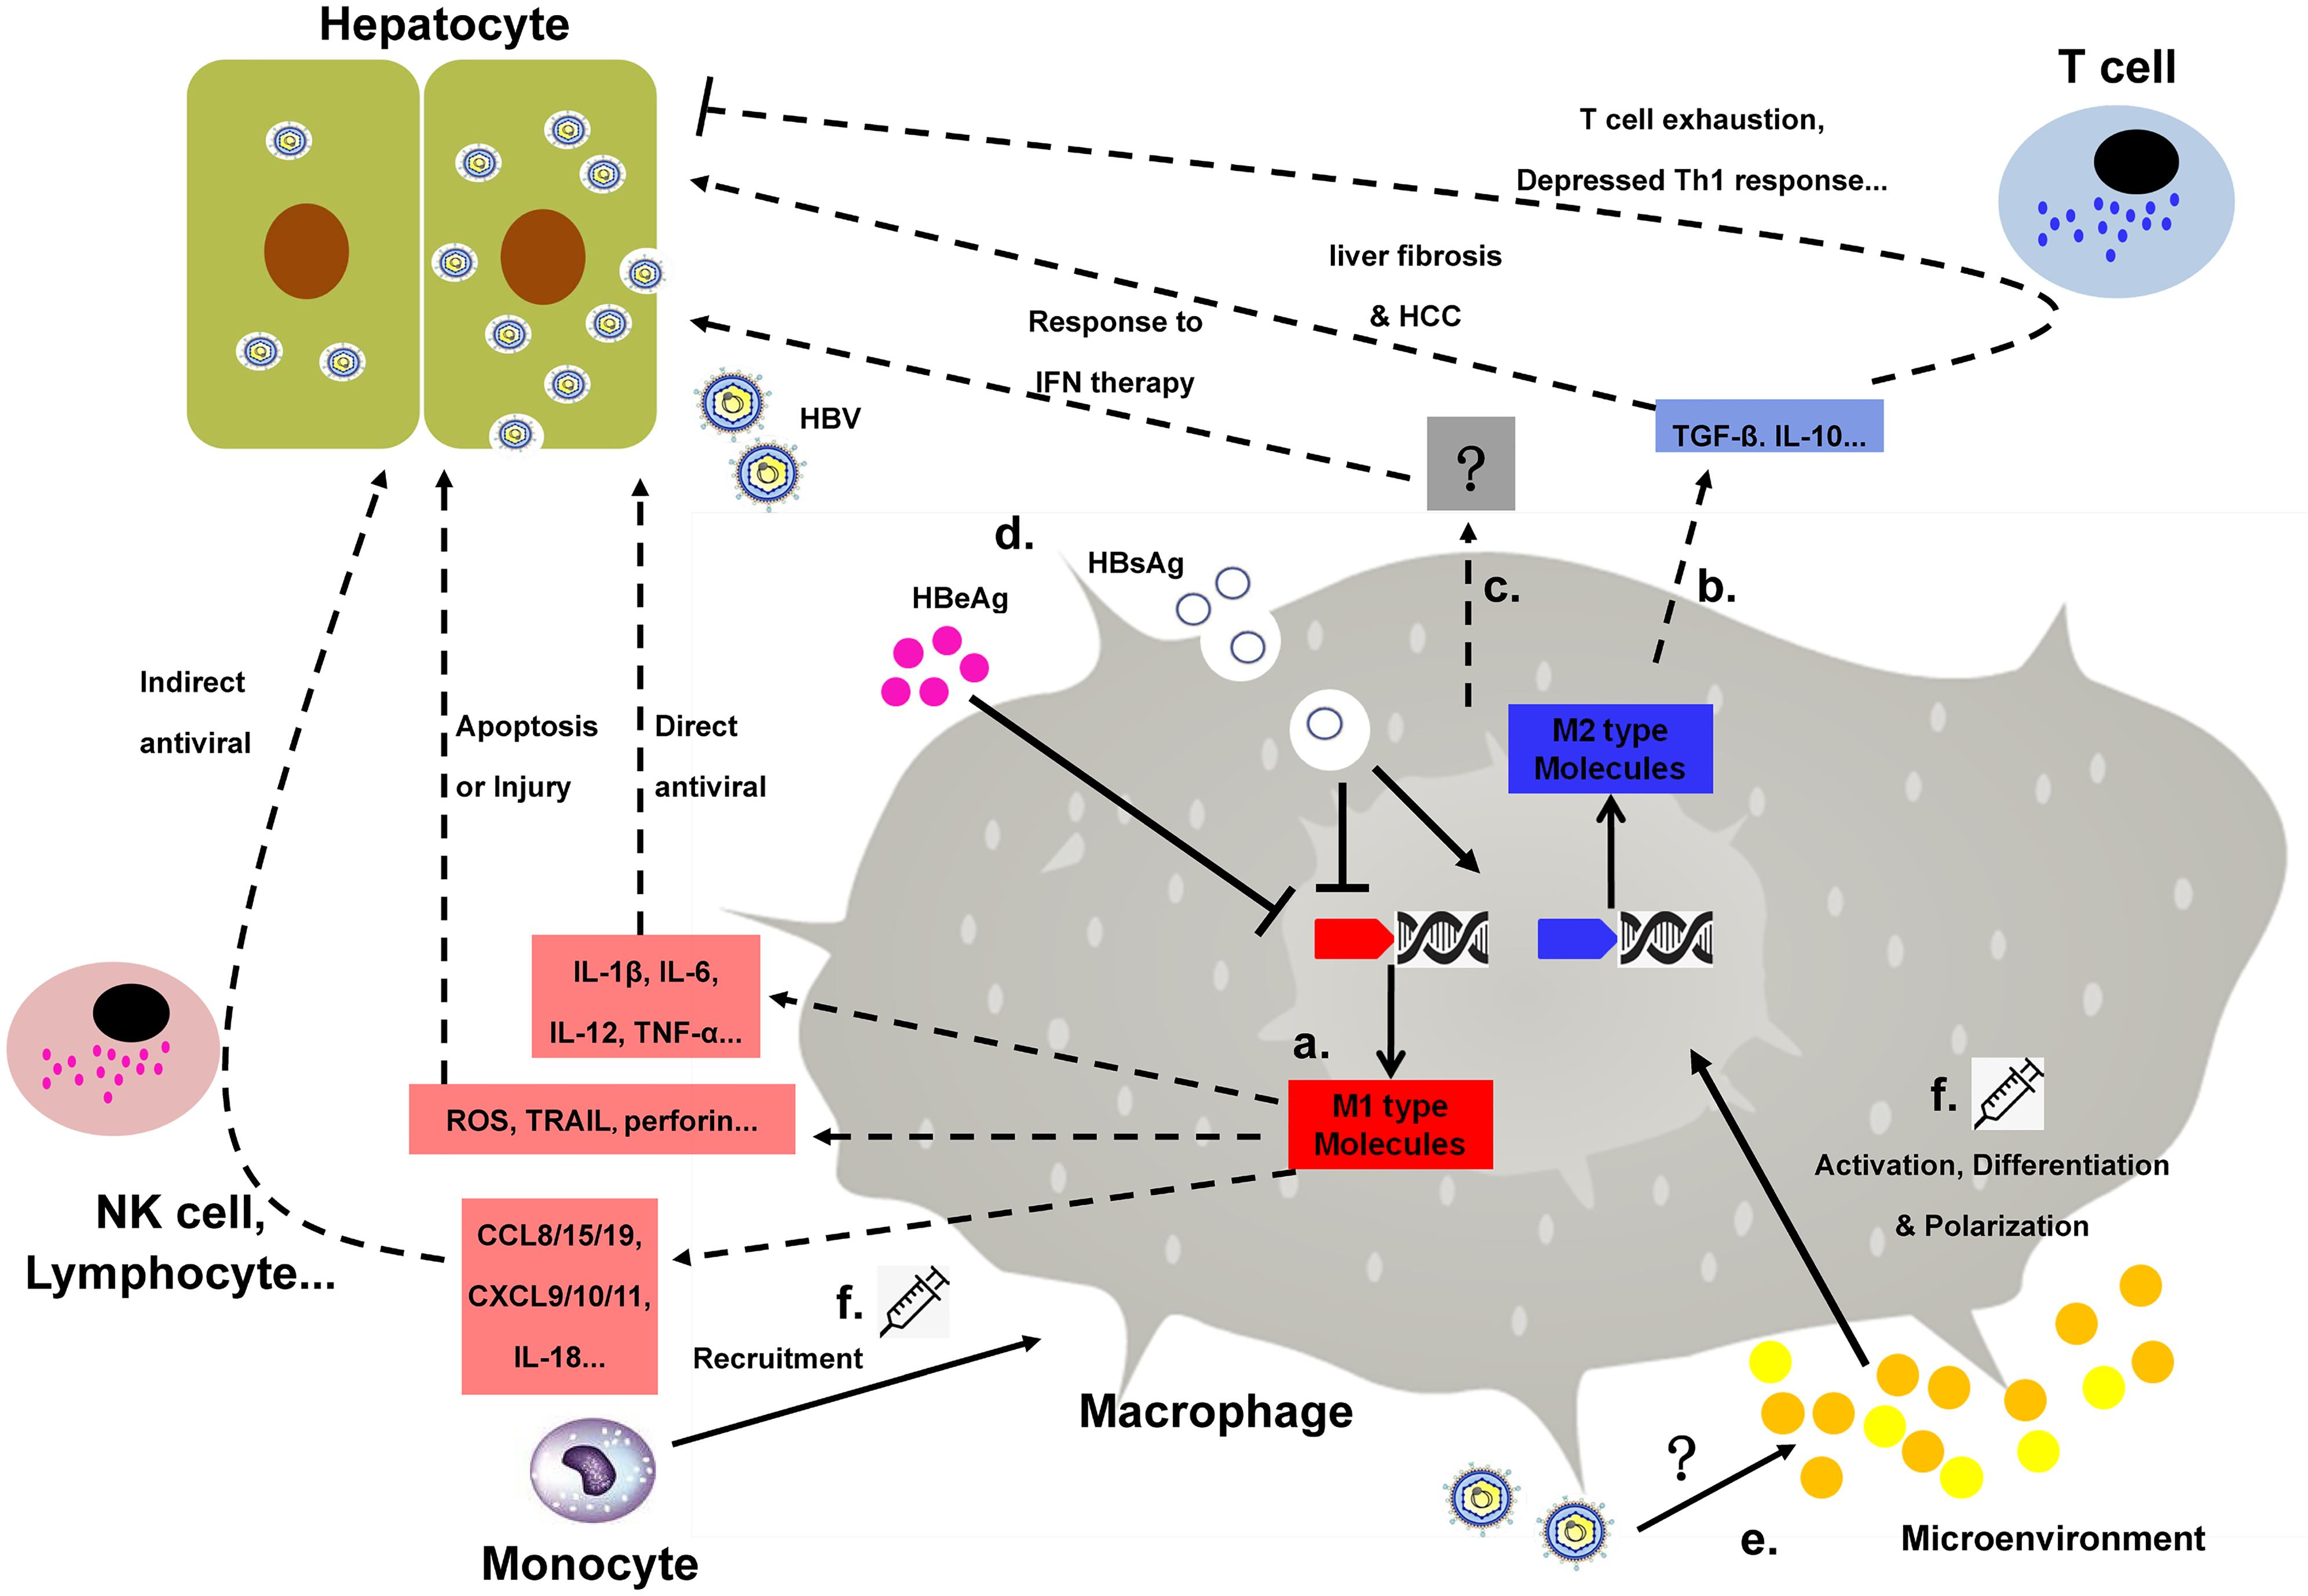 Macrophage involvement in HBV infection. The anti-HBV effect of macrophages is mediated mainly by pro-inflammatory cytokines inducing a direct antiviral response or molecules recruiting or activating other immune cells. Meanwhile, another group of M1 KCs produces molecules that may result in injury or apoptosis of the hepatocytes